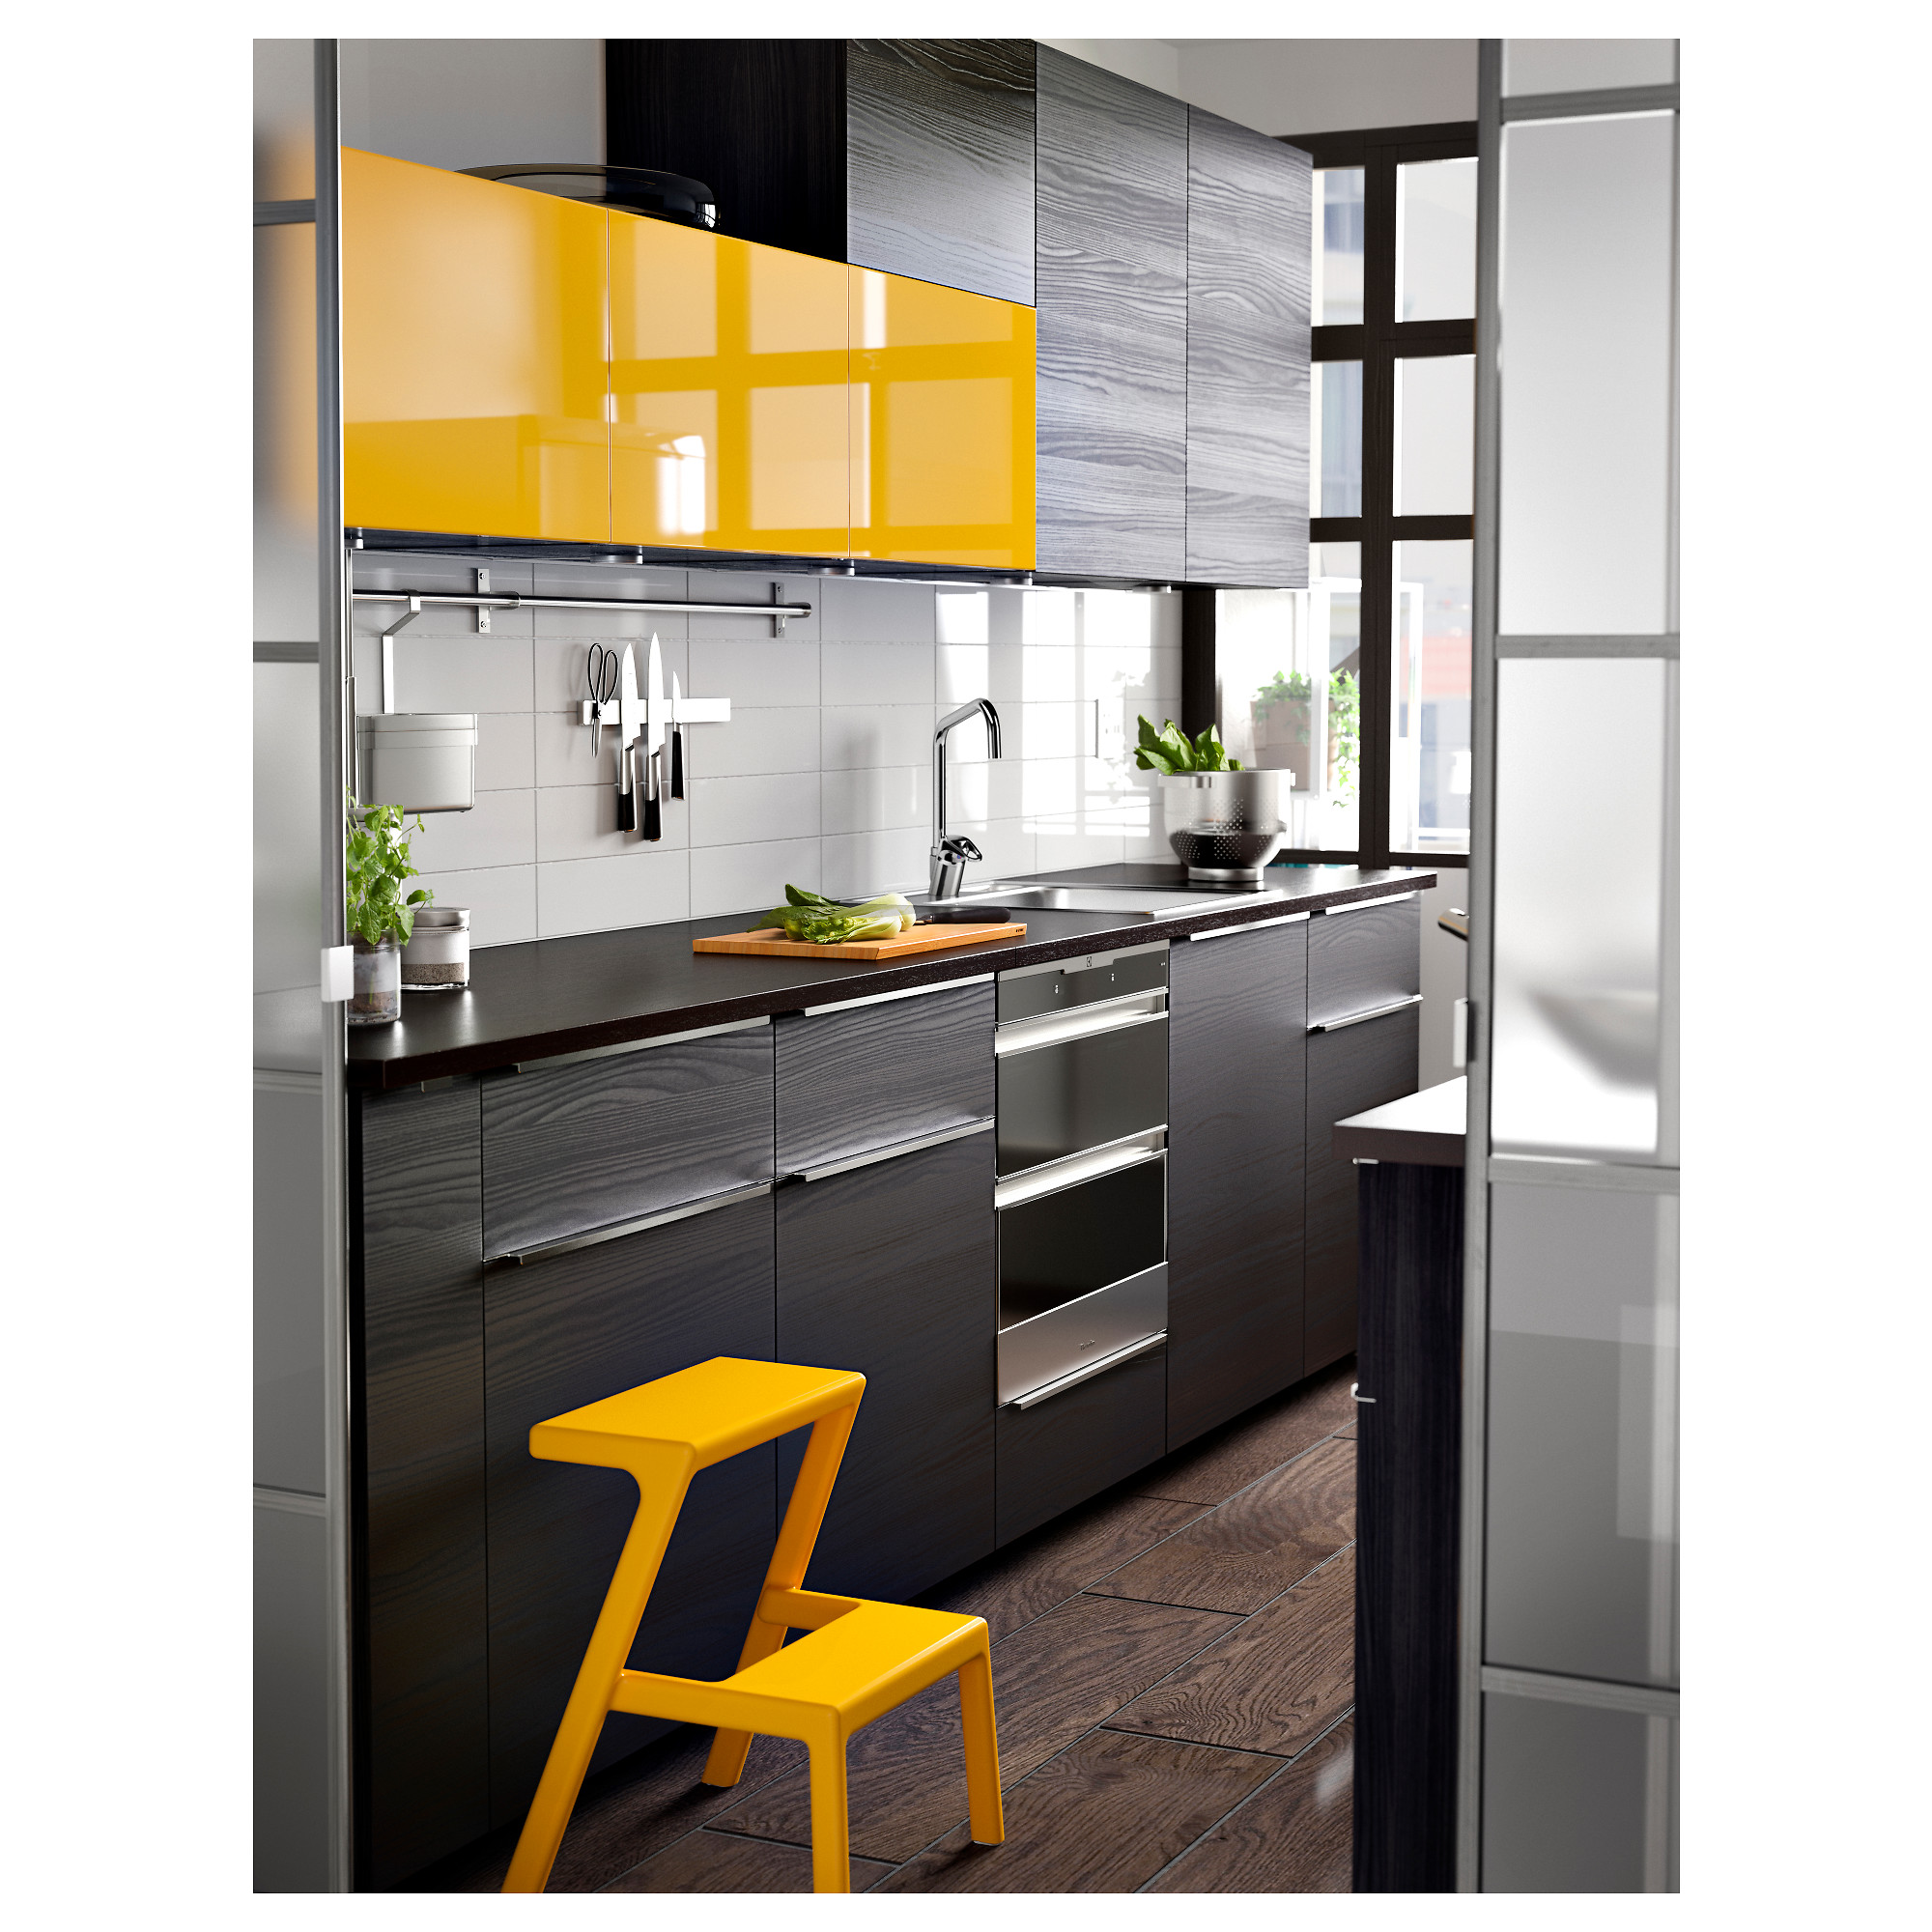 Cucina Ikea Tingsryd Jarsta Tingsryd 2 P Door F Corner Base Cabinet Set Wood Effect Black